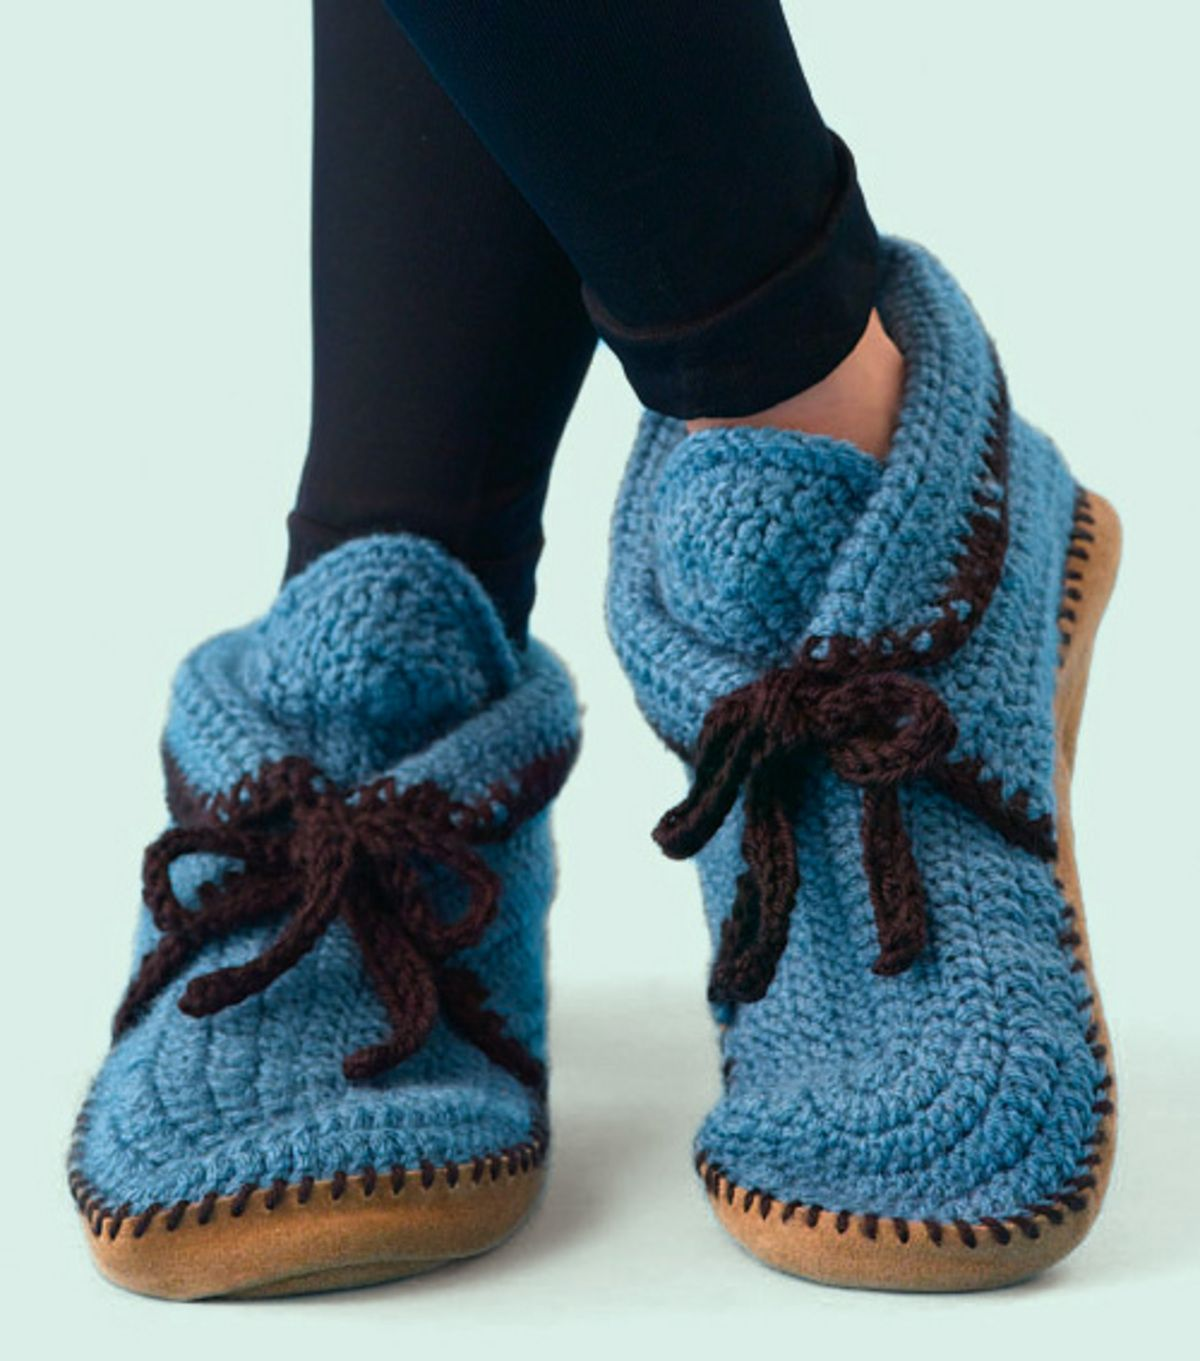 Free Crochet Slipper Patterns Crotchet Croch